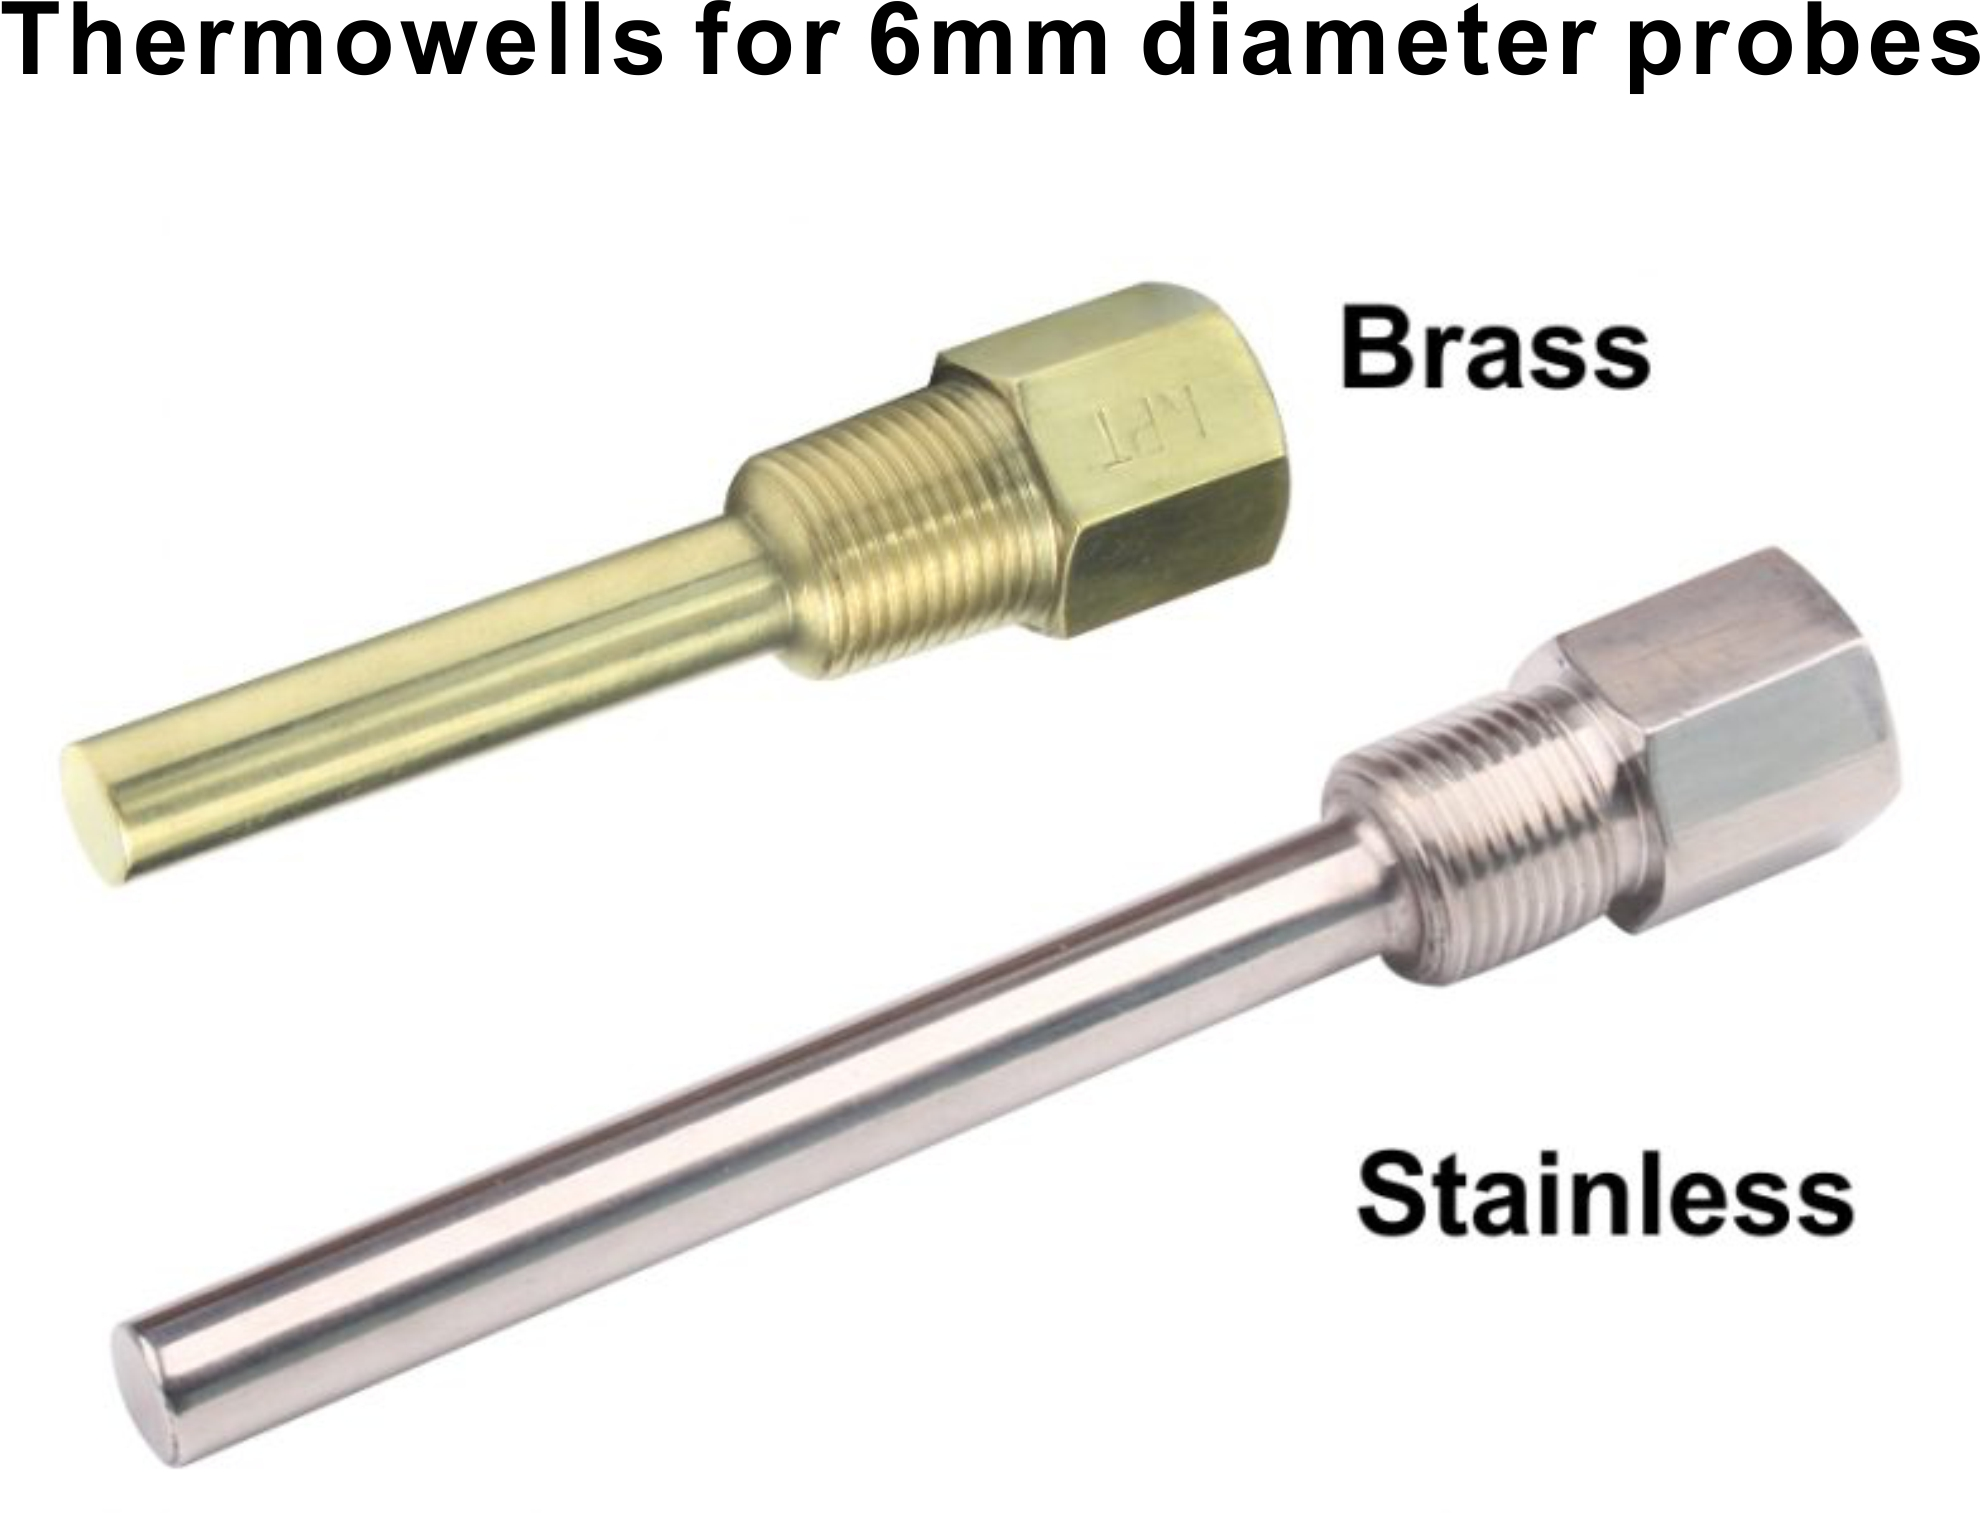 Brass stainless steel thermowells temco controls ltd